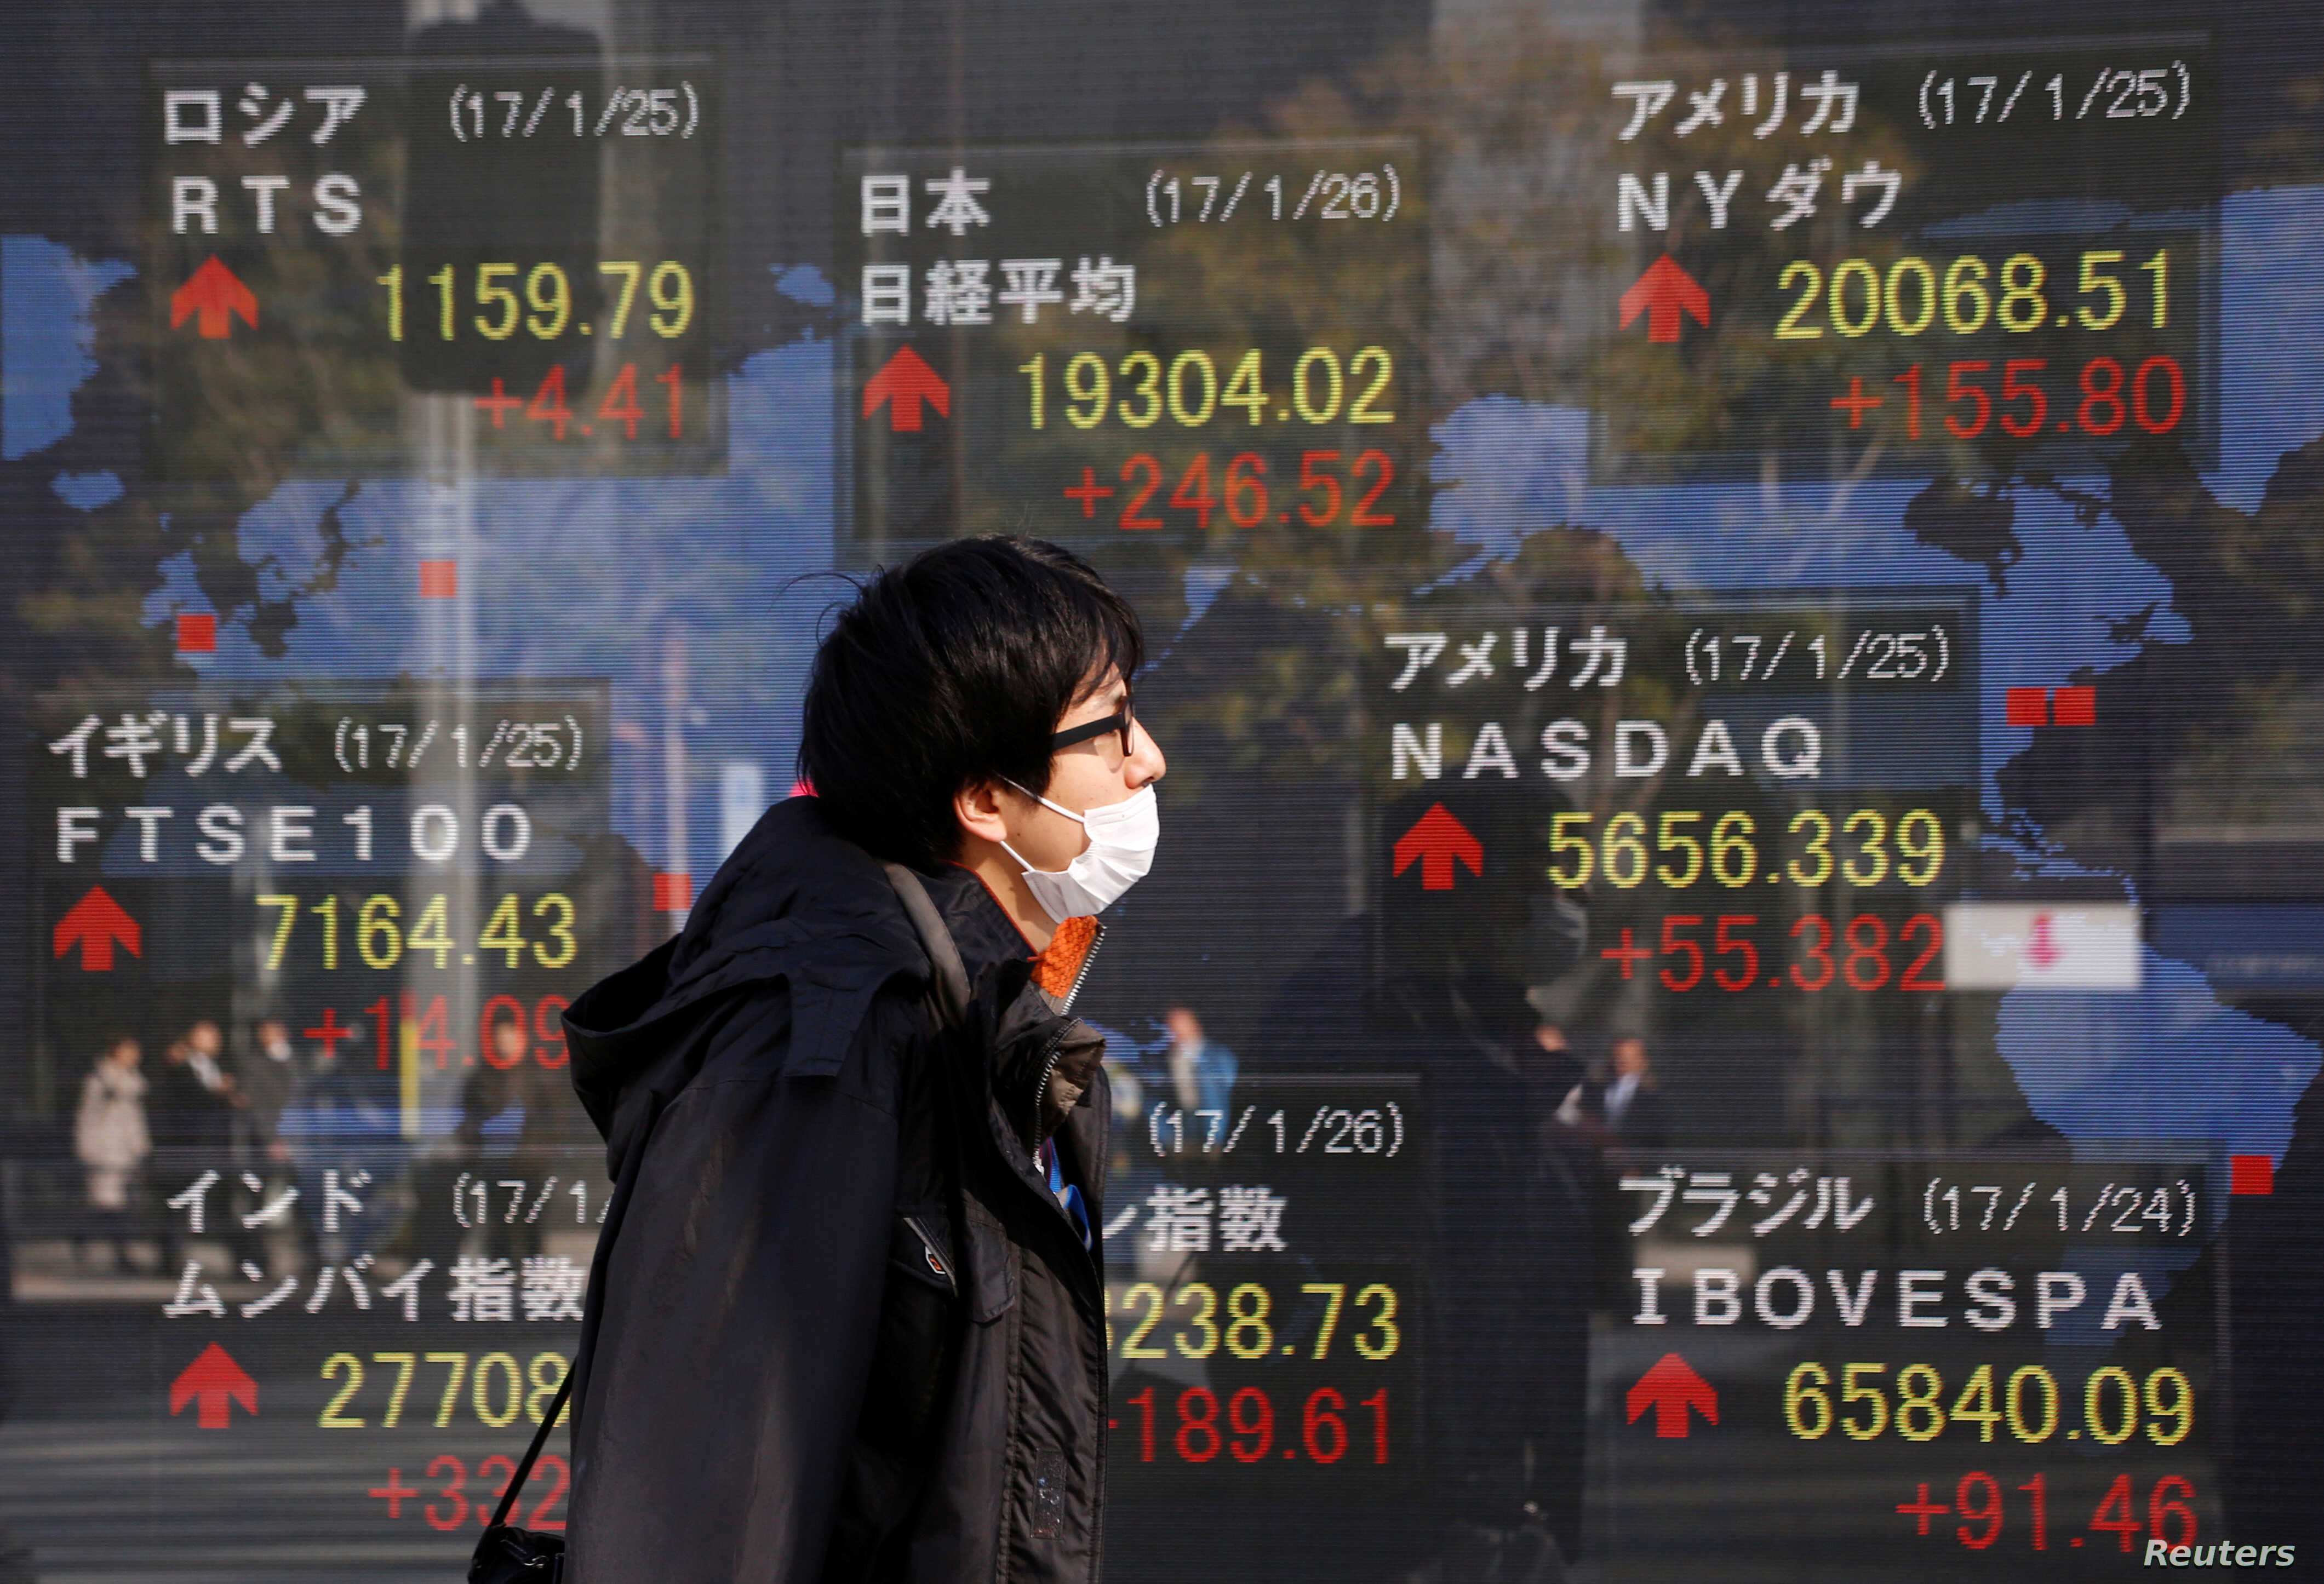 A man walks past an electronic board showing Japan's Nikkei average, top left, the Dow Jones average, top right, and the stock averages of other countries' outside a brokerage in Tokyo, Japan, Jan. 26, 2017.